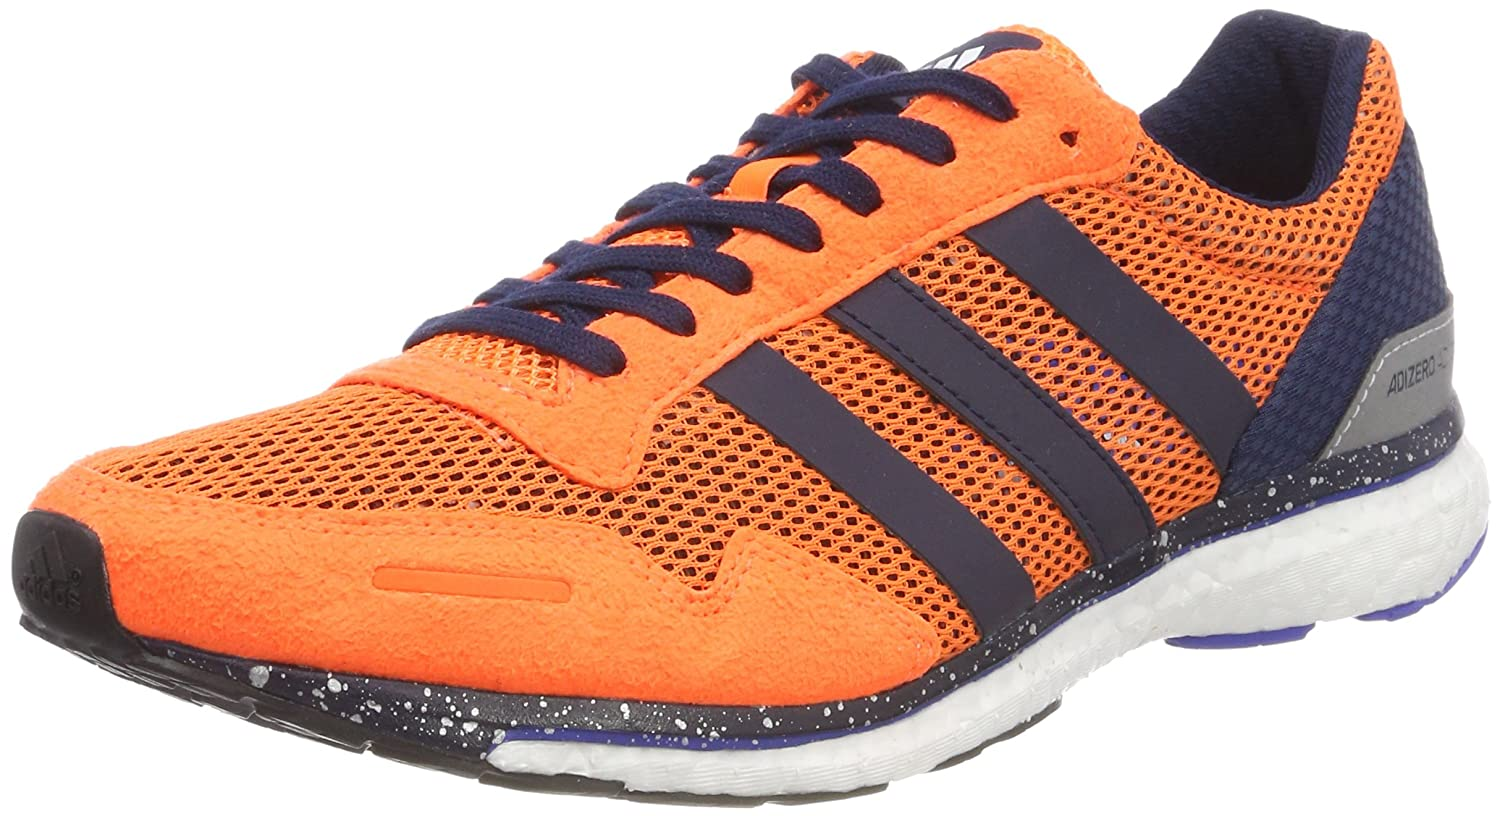 adidas Men s Adizero Adios Competition Running Shoes  Amazon.co.uk  Shoes    Bags 5a8cff9fd